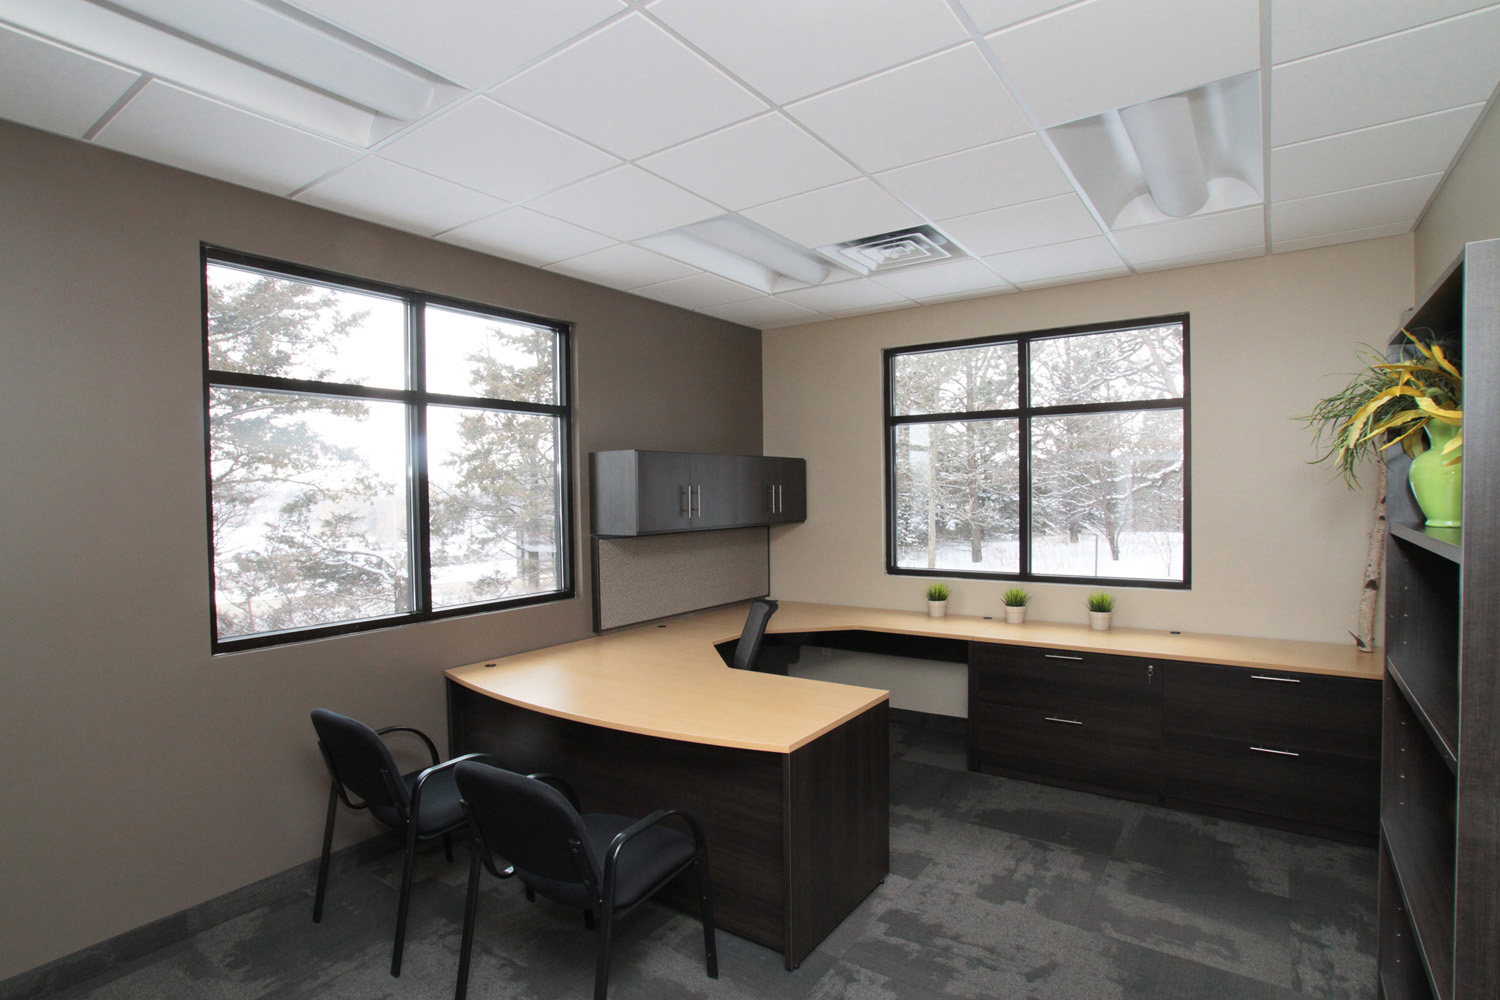 Office space design mankato new used office for Office space planning